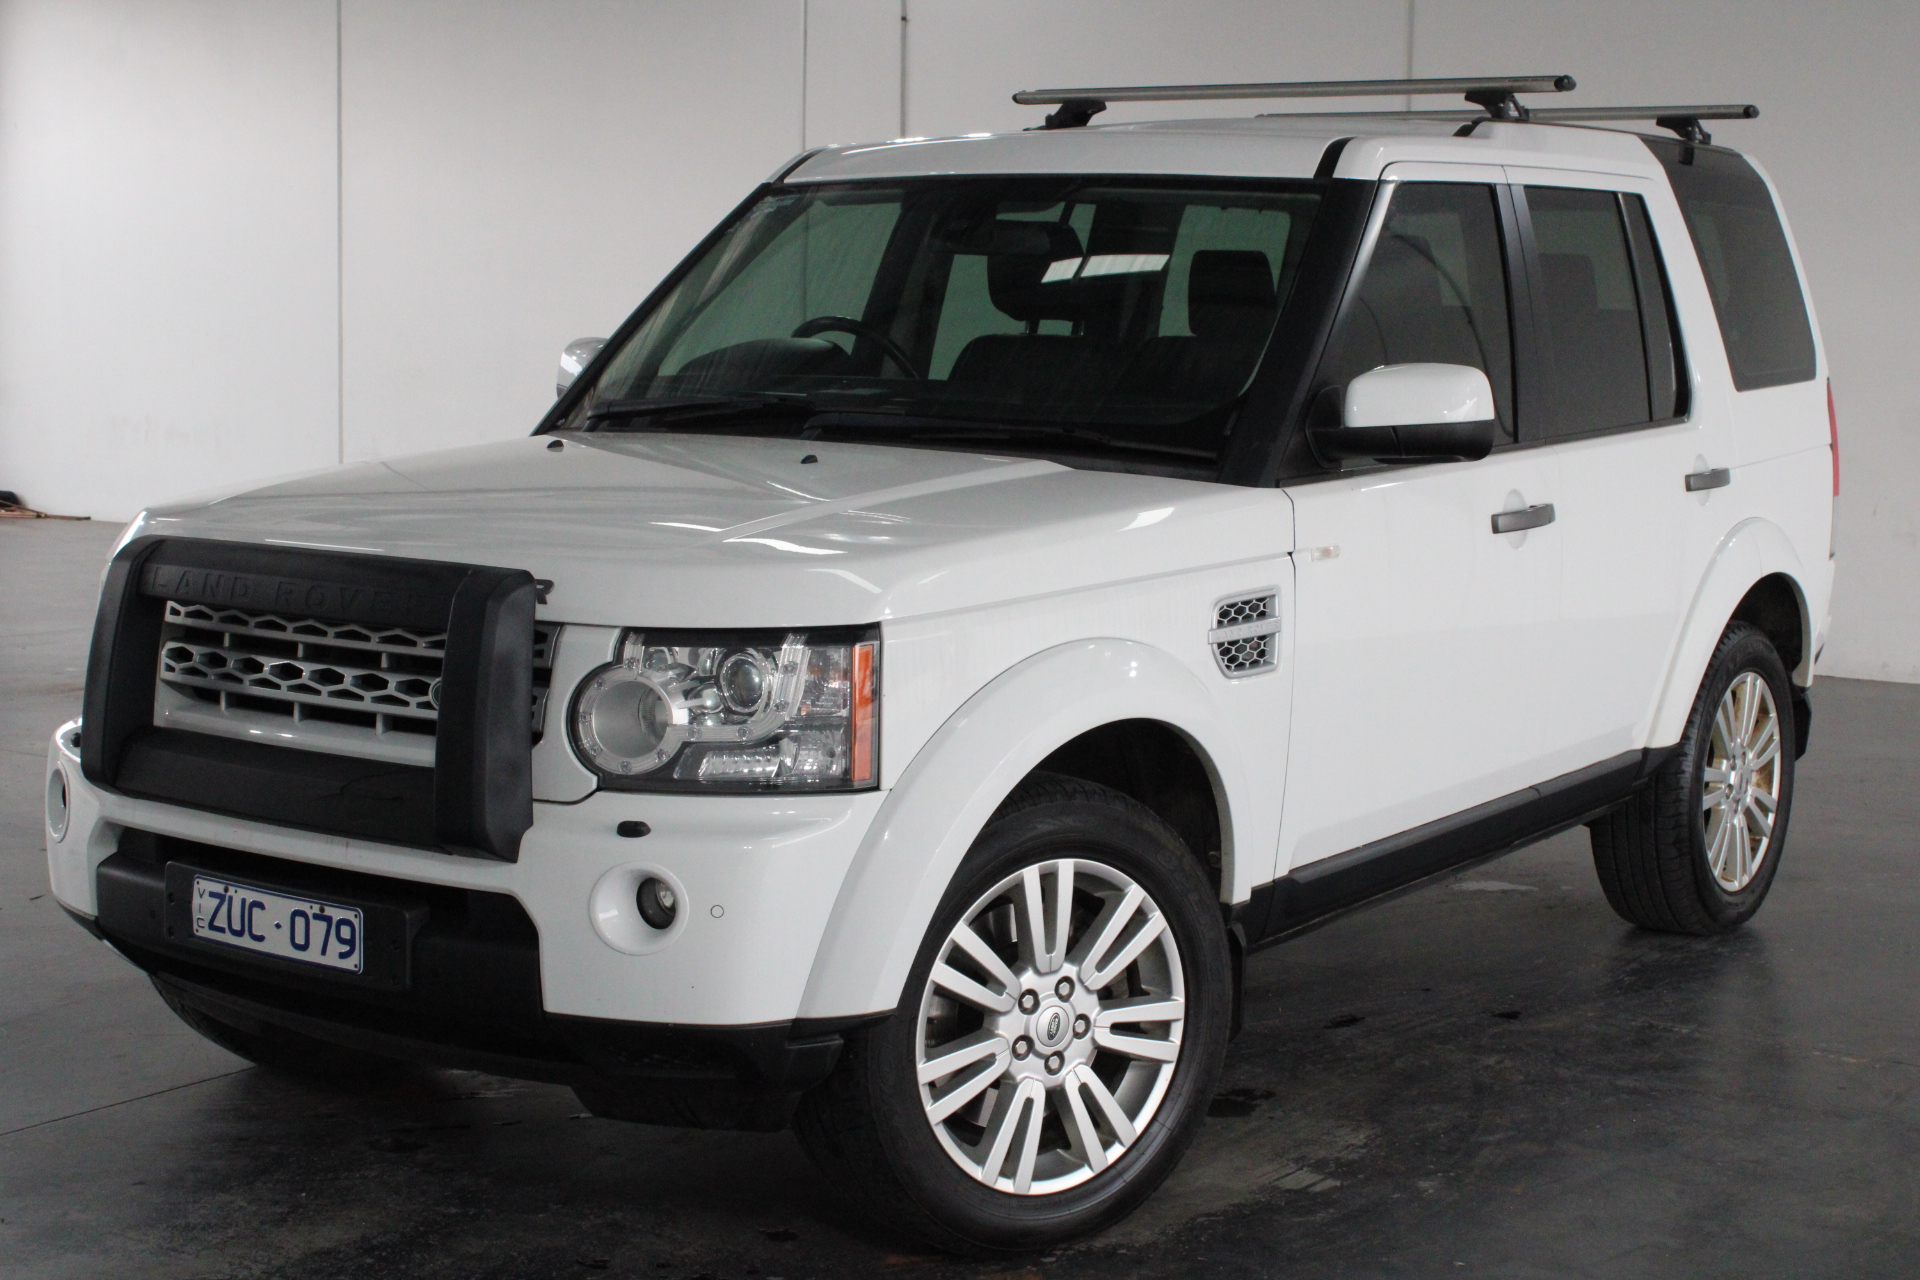 2013 Land Rover Discovery 3.0 TDV6 Series 4 Turbo Diesel Automatic 7 Seats